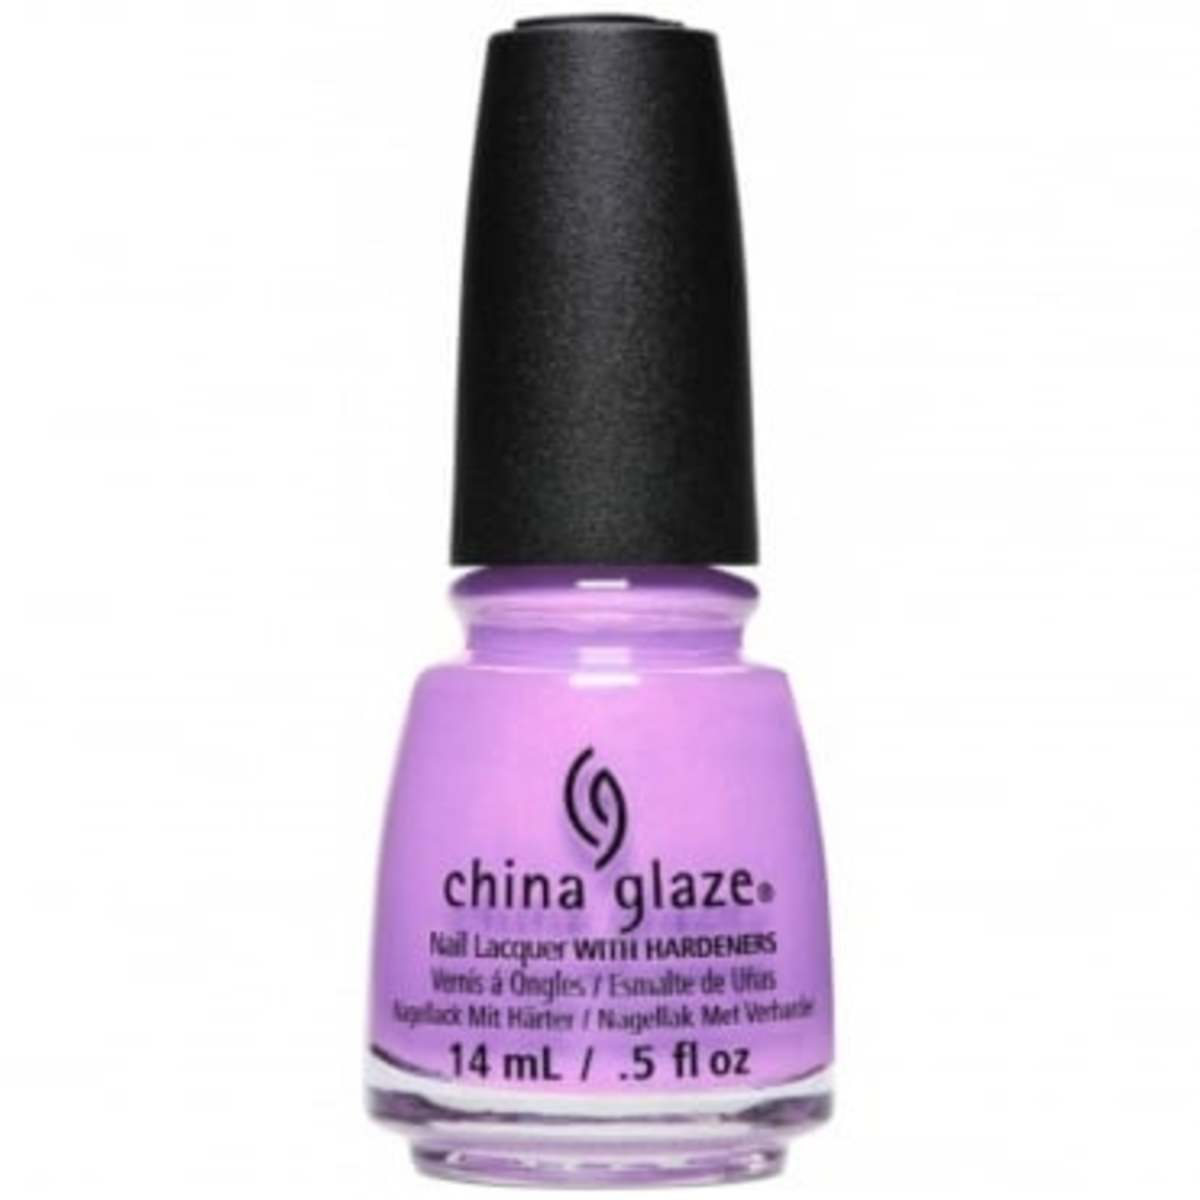 Get It Right, Get It Bright - China Glaze Spring 2018